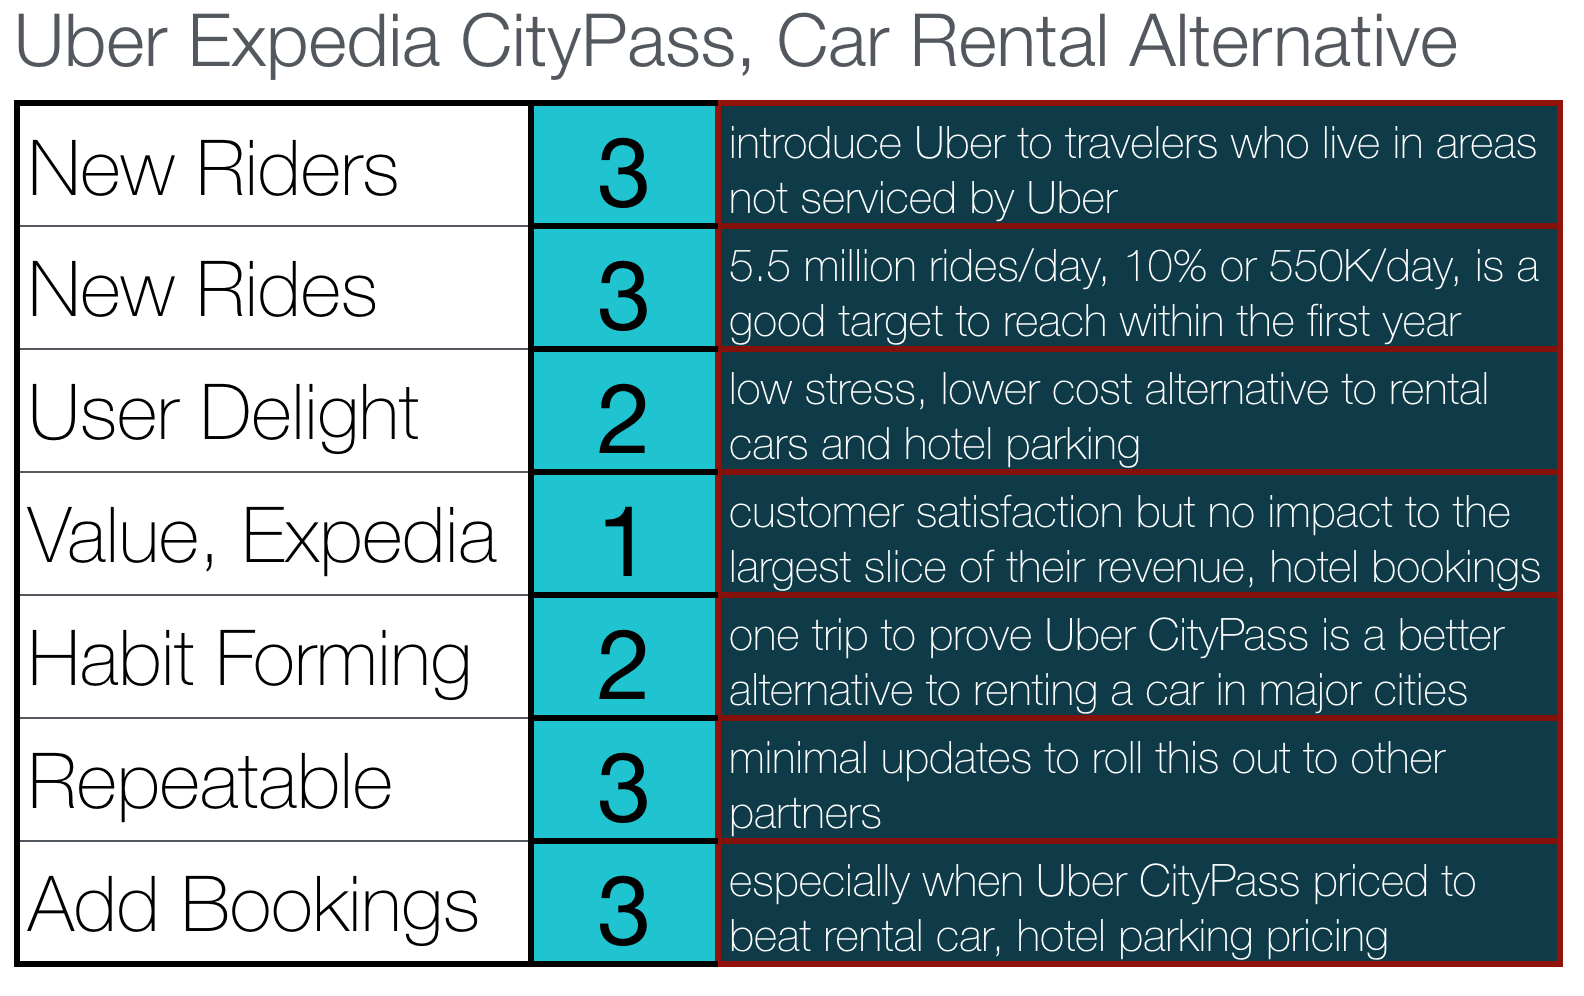 uber-expedia-blog-expedia-citypass.png